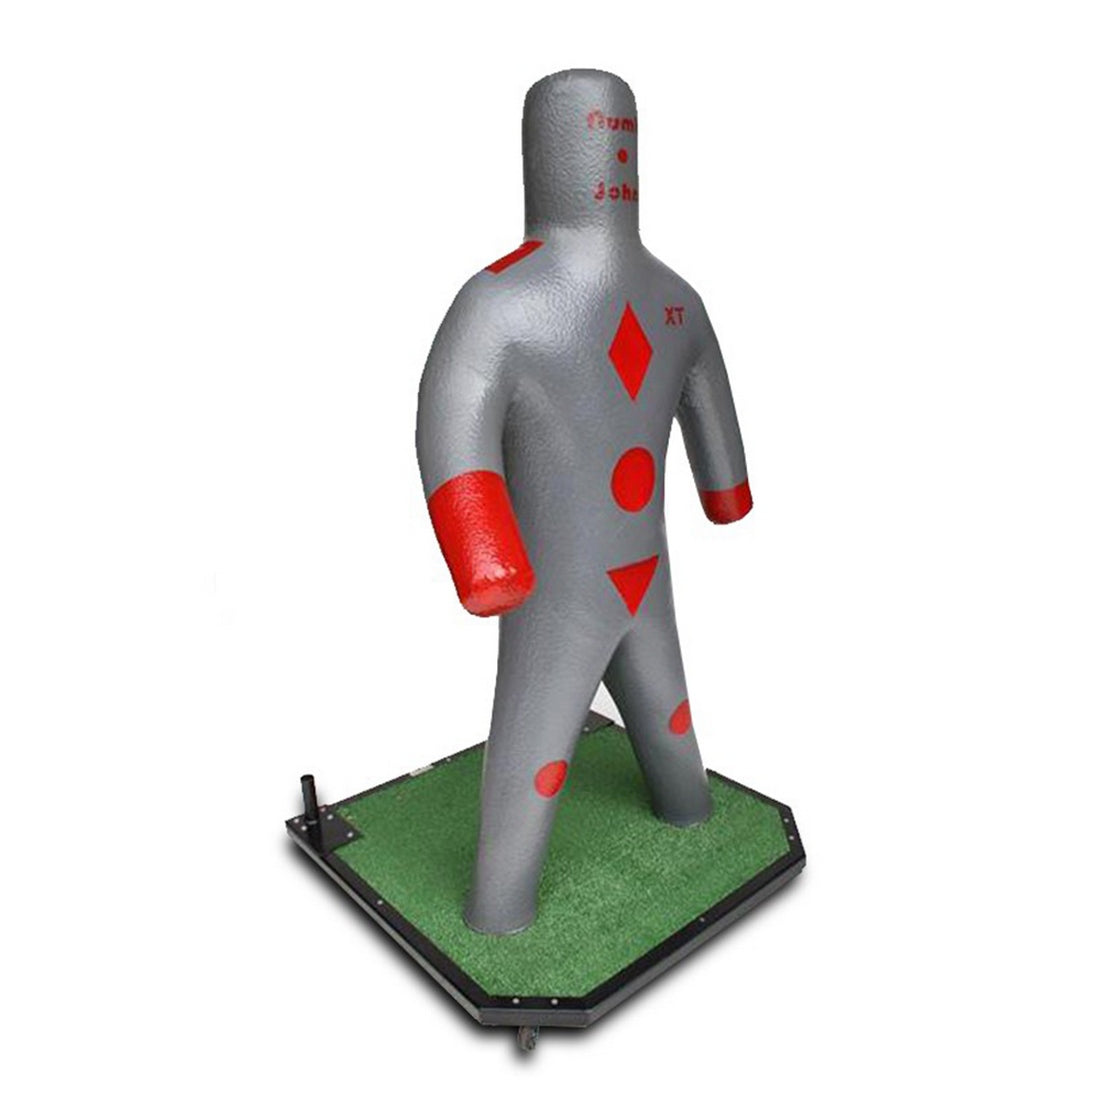 Numb John XT Less Lethal Training Dummy